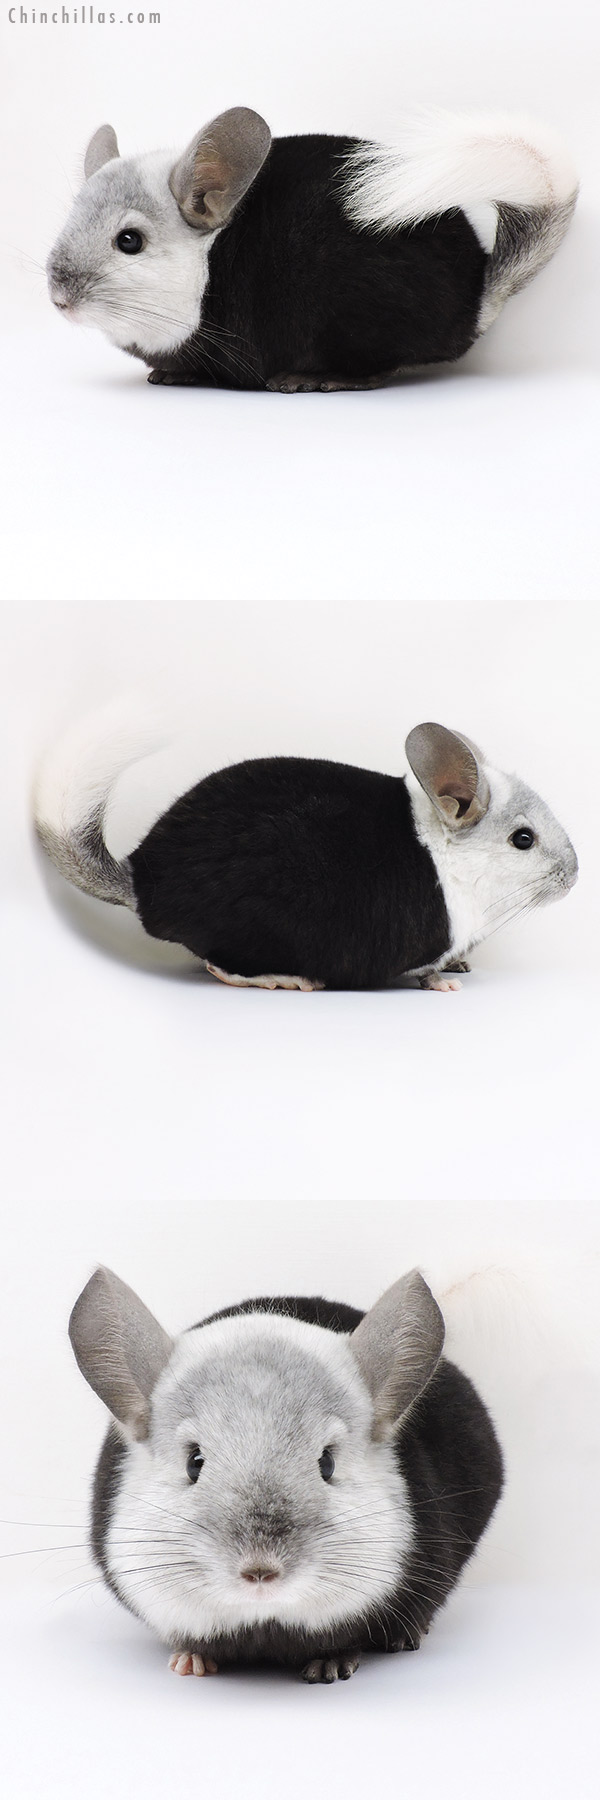 16366 Extreme Ebony & White Mosaic ( Locken Carrier ) Male Chinchilla